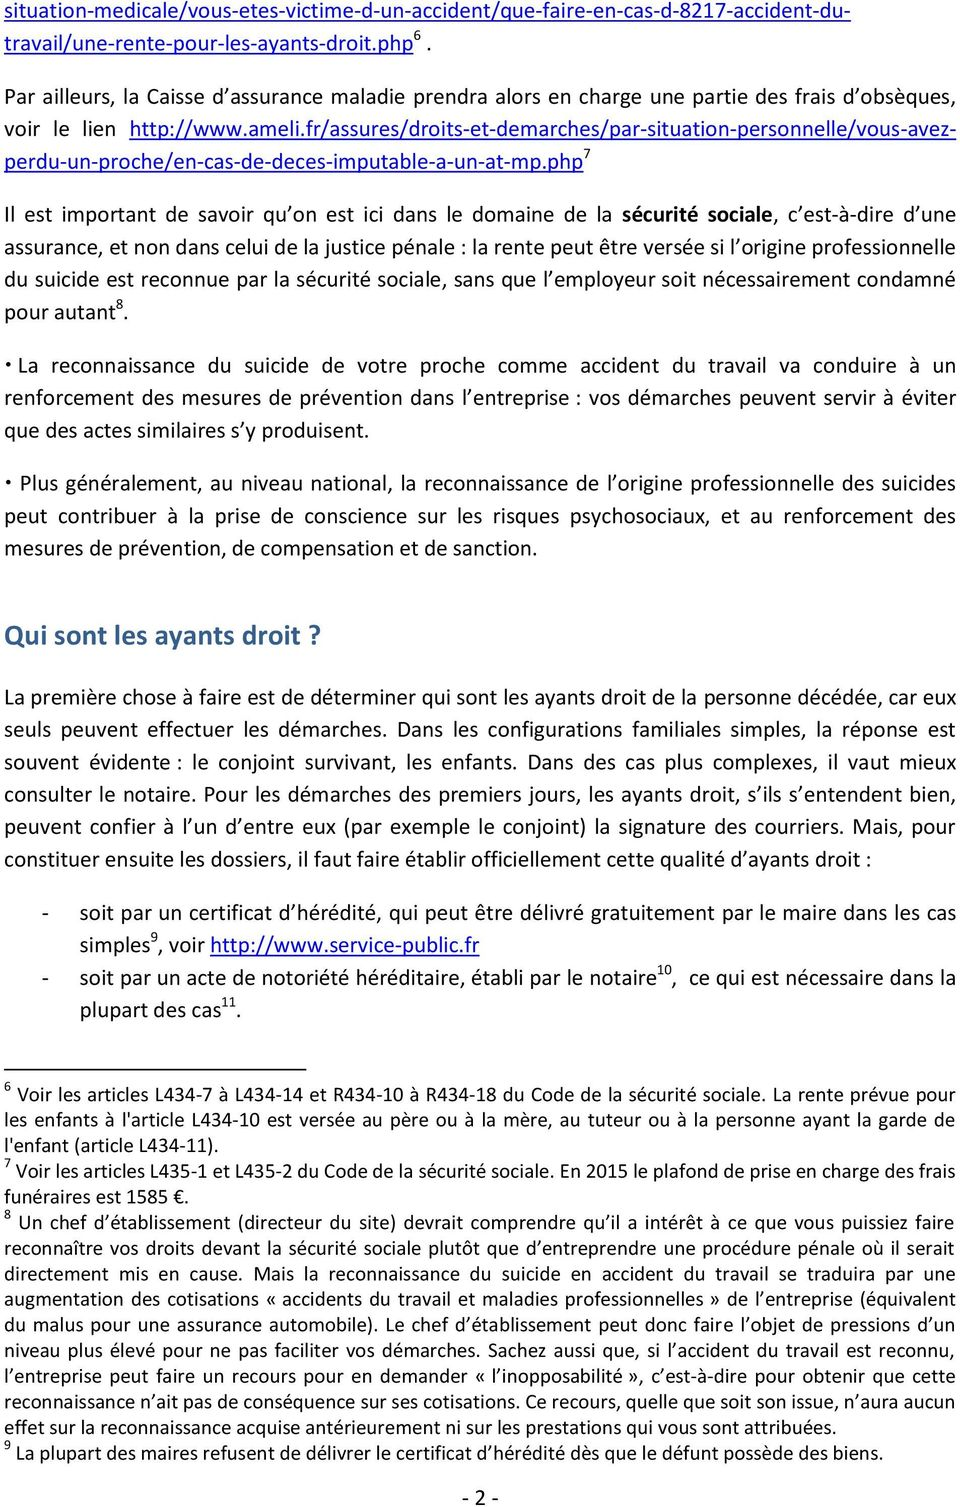 fr/assures/droits-et-demarches/par-situation-personnelle/vous-avezperdu-un-proche/en-cas-de-deces-imputable-a-un-at-mp.